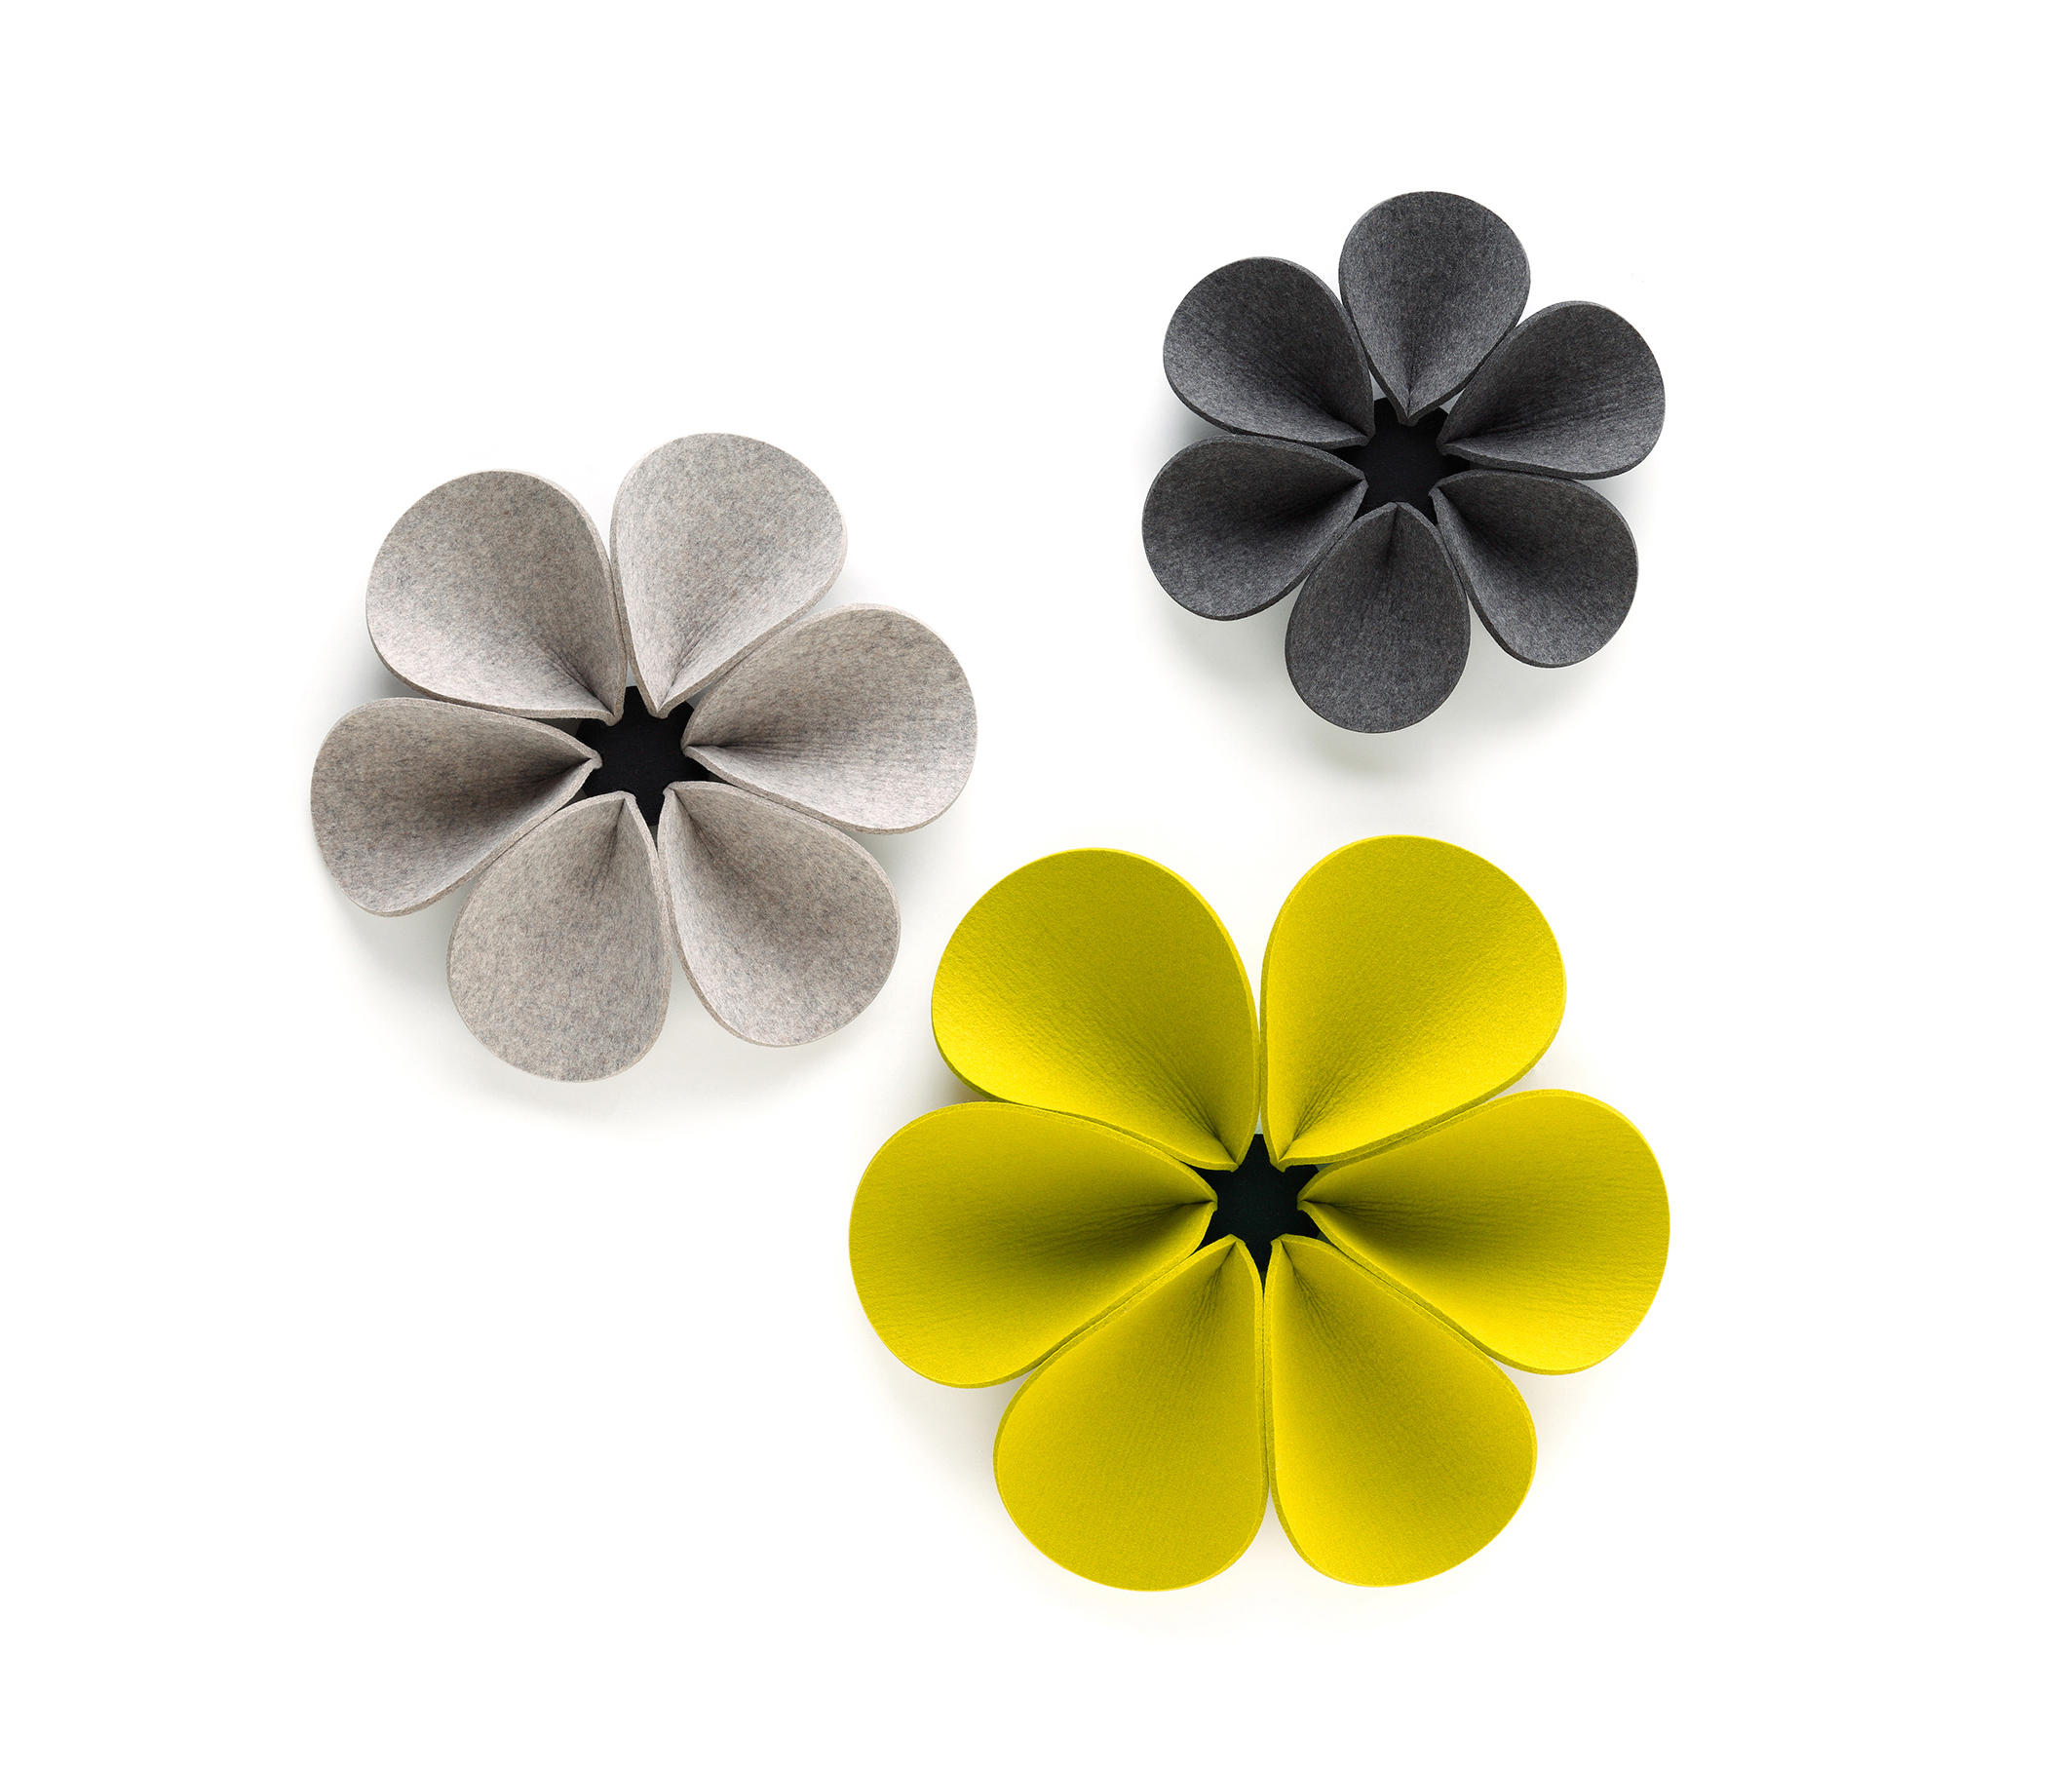 ACOUSTIC ELEMENT SILENT FLOWER - Wall decoration from HEY-SIGN ...